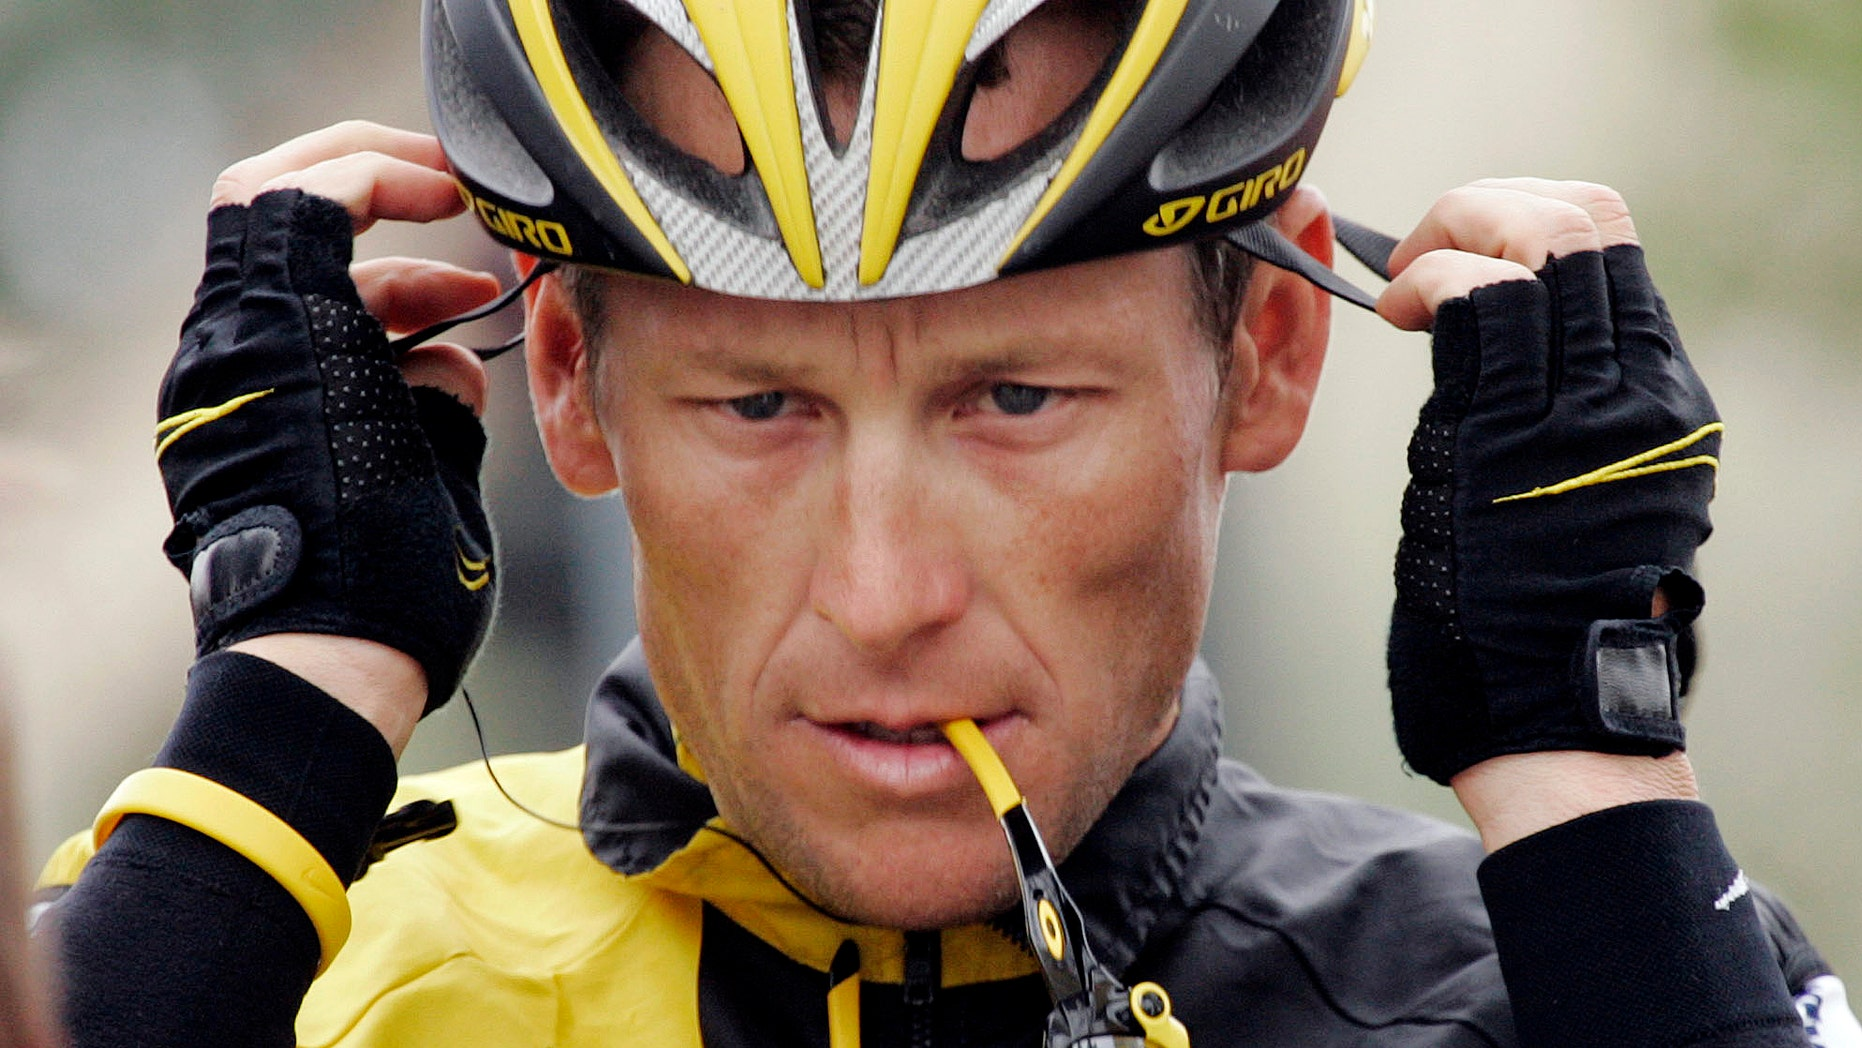 Like it never happened: Lance Armstrong's record seven Tour de France titles will be stricken from the books. (AP)